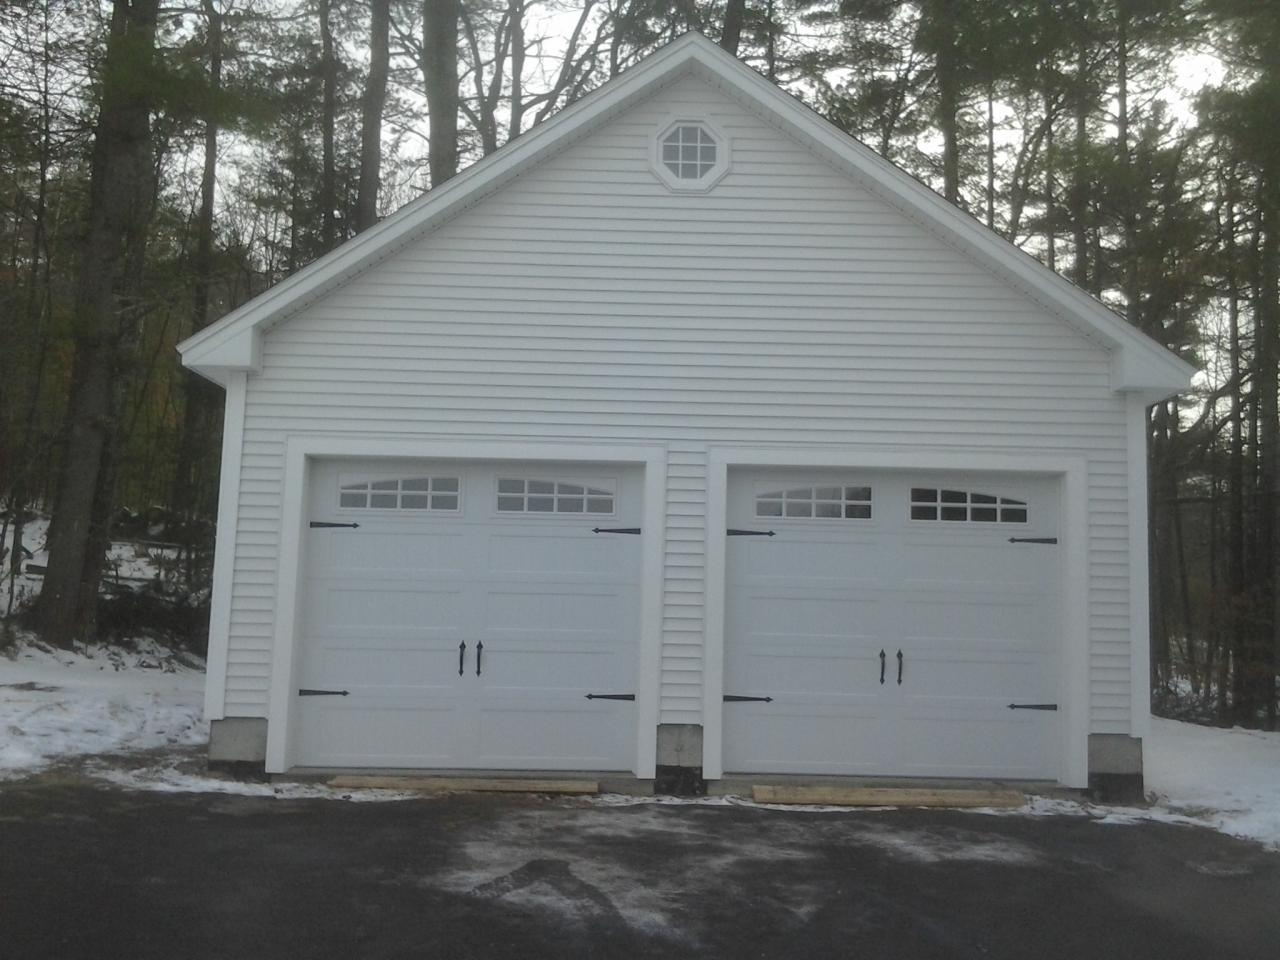 Jws custom decks garages603 494 3299 for Material list for garage